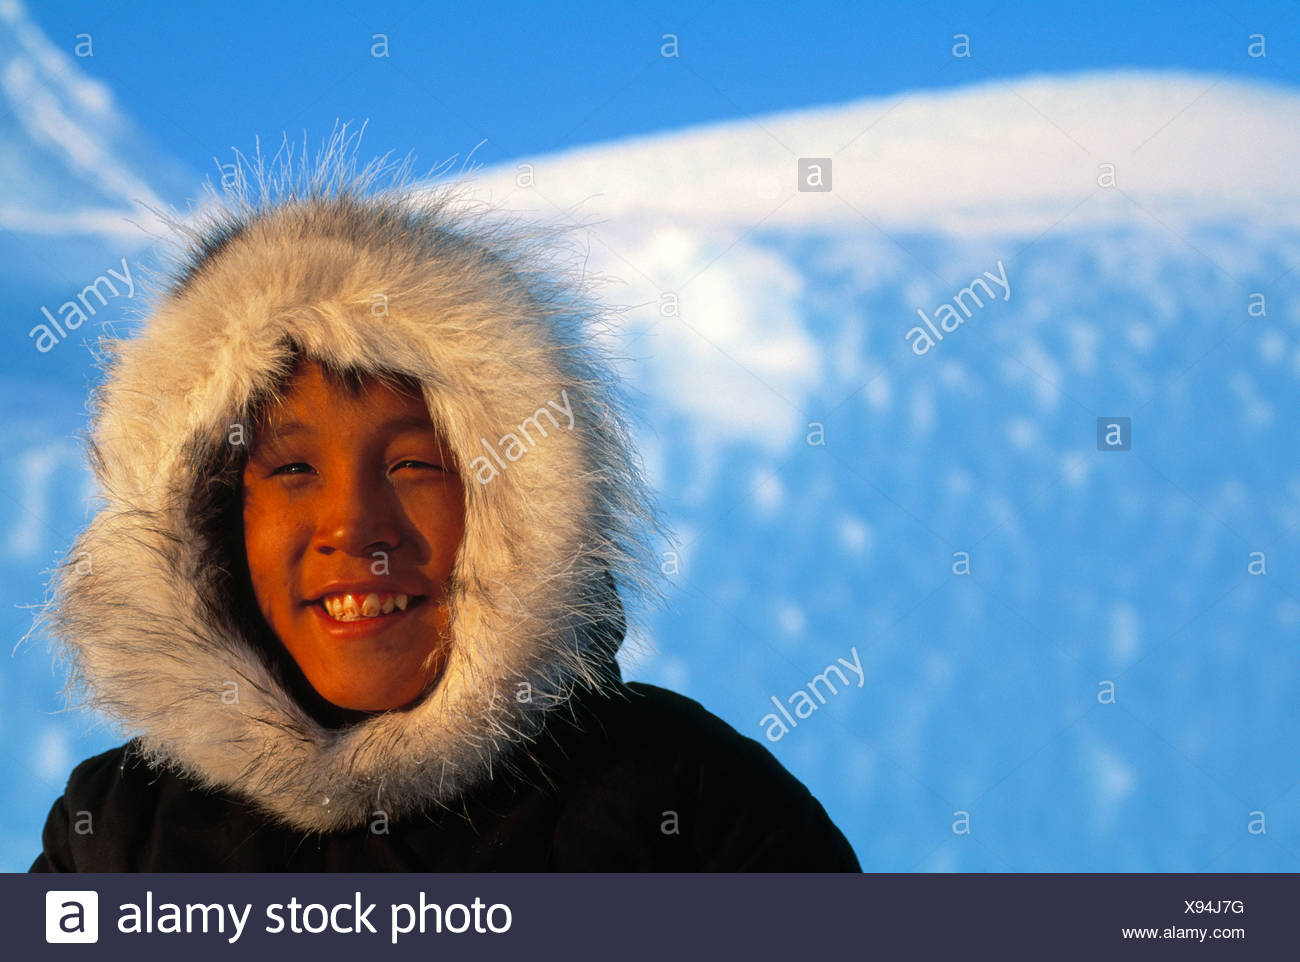 bff9d3fb4d7 Inuit Eskimo boy in front of ice berg Canada - Stock Image